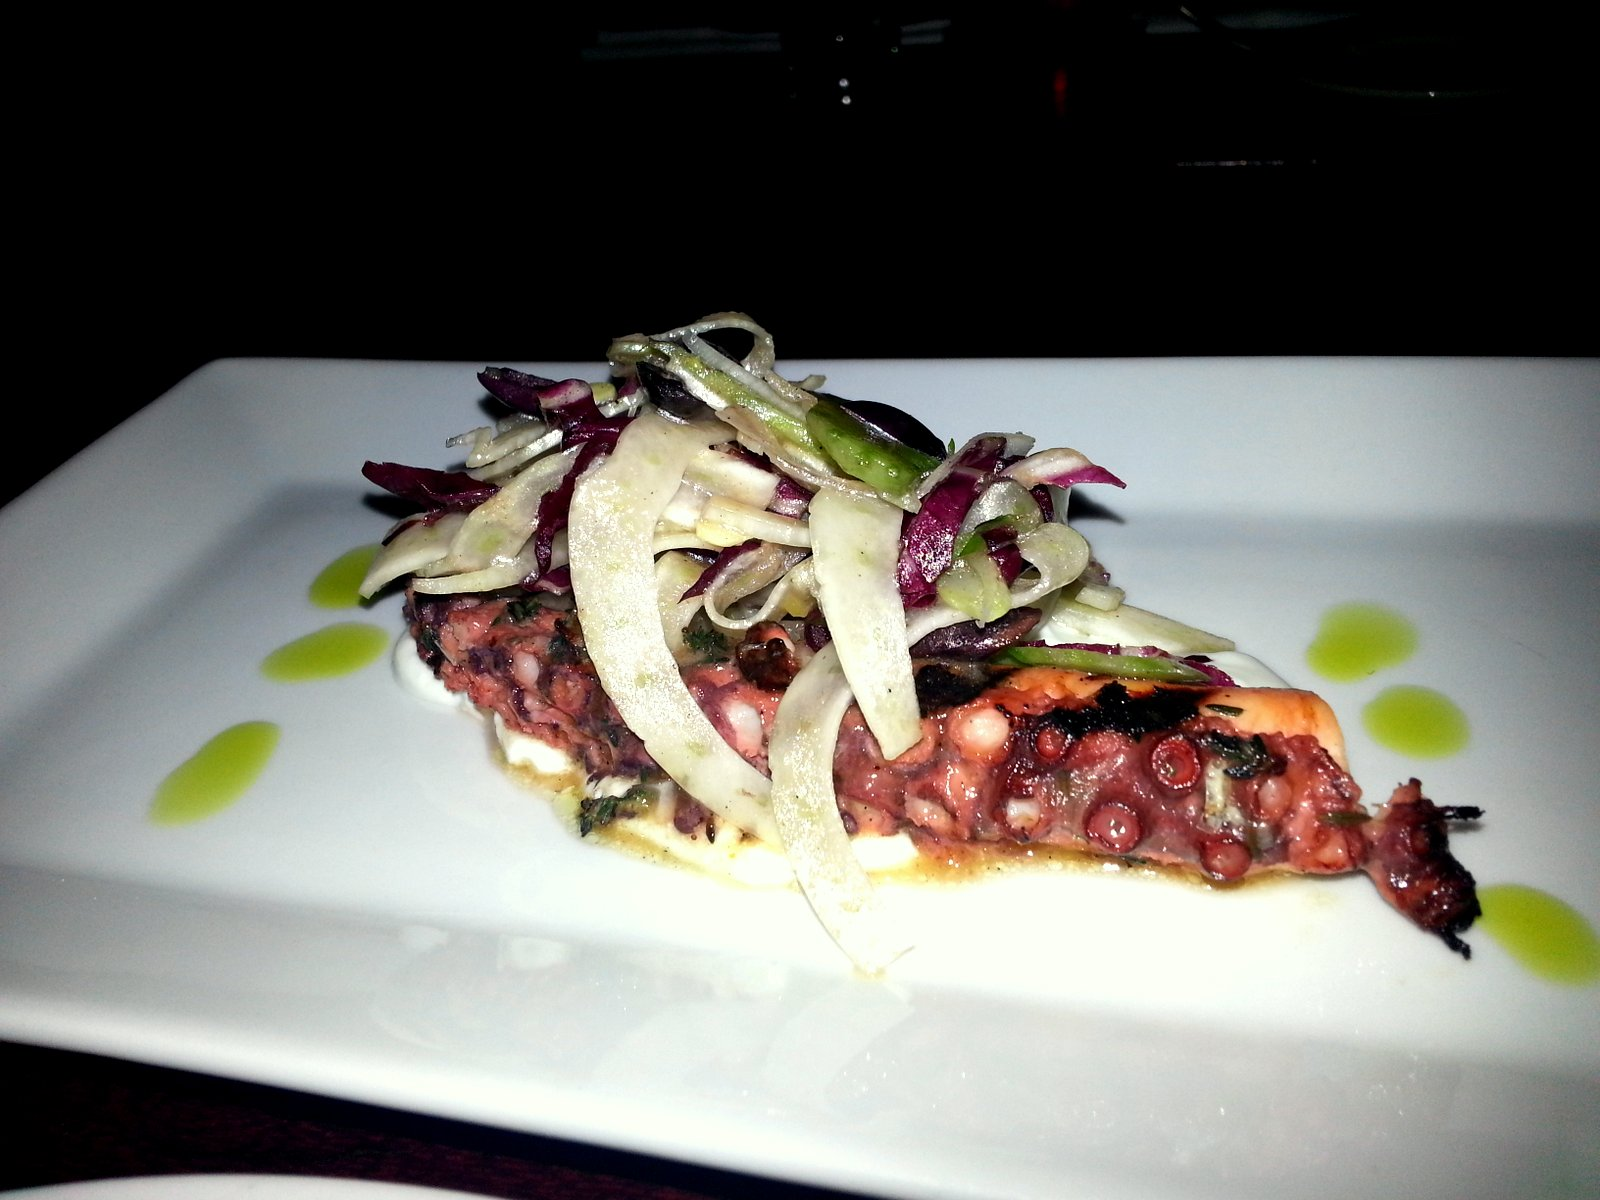 Grilled Portuguese Octopus: Shaved Celery, Radicchio, Fennel, Kalamata Olives, Greek Yogurt &amp; Charred Lemon Vinaigrette